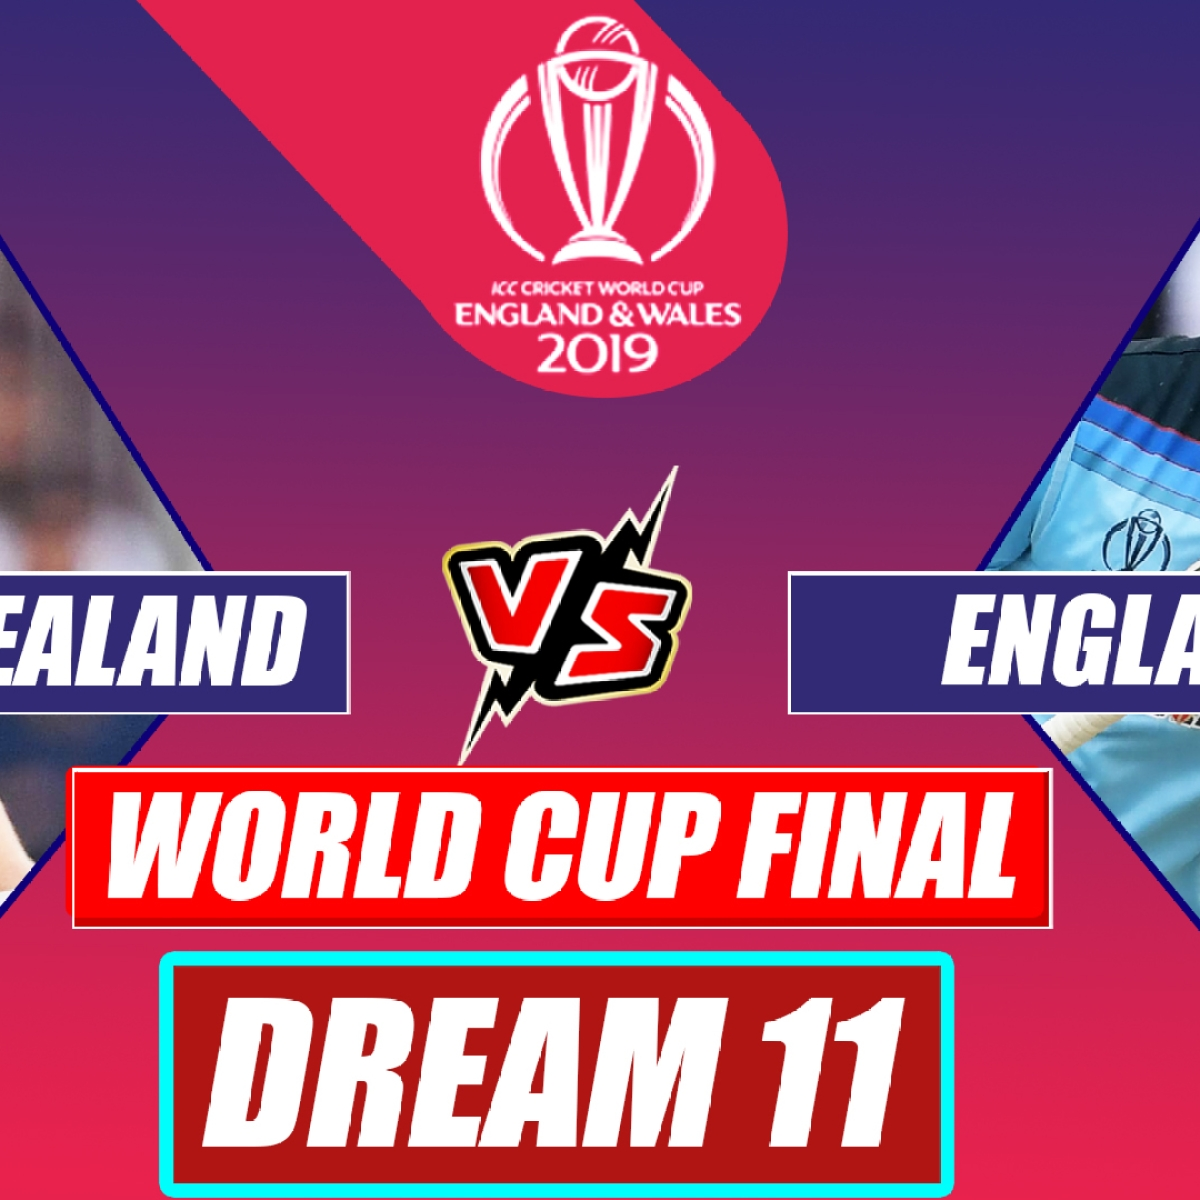 New Zealand vs England CWC 2019 Final Match : Playing XI, Dream XI Prediction For NZ And ENG